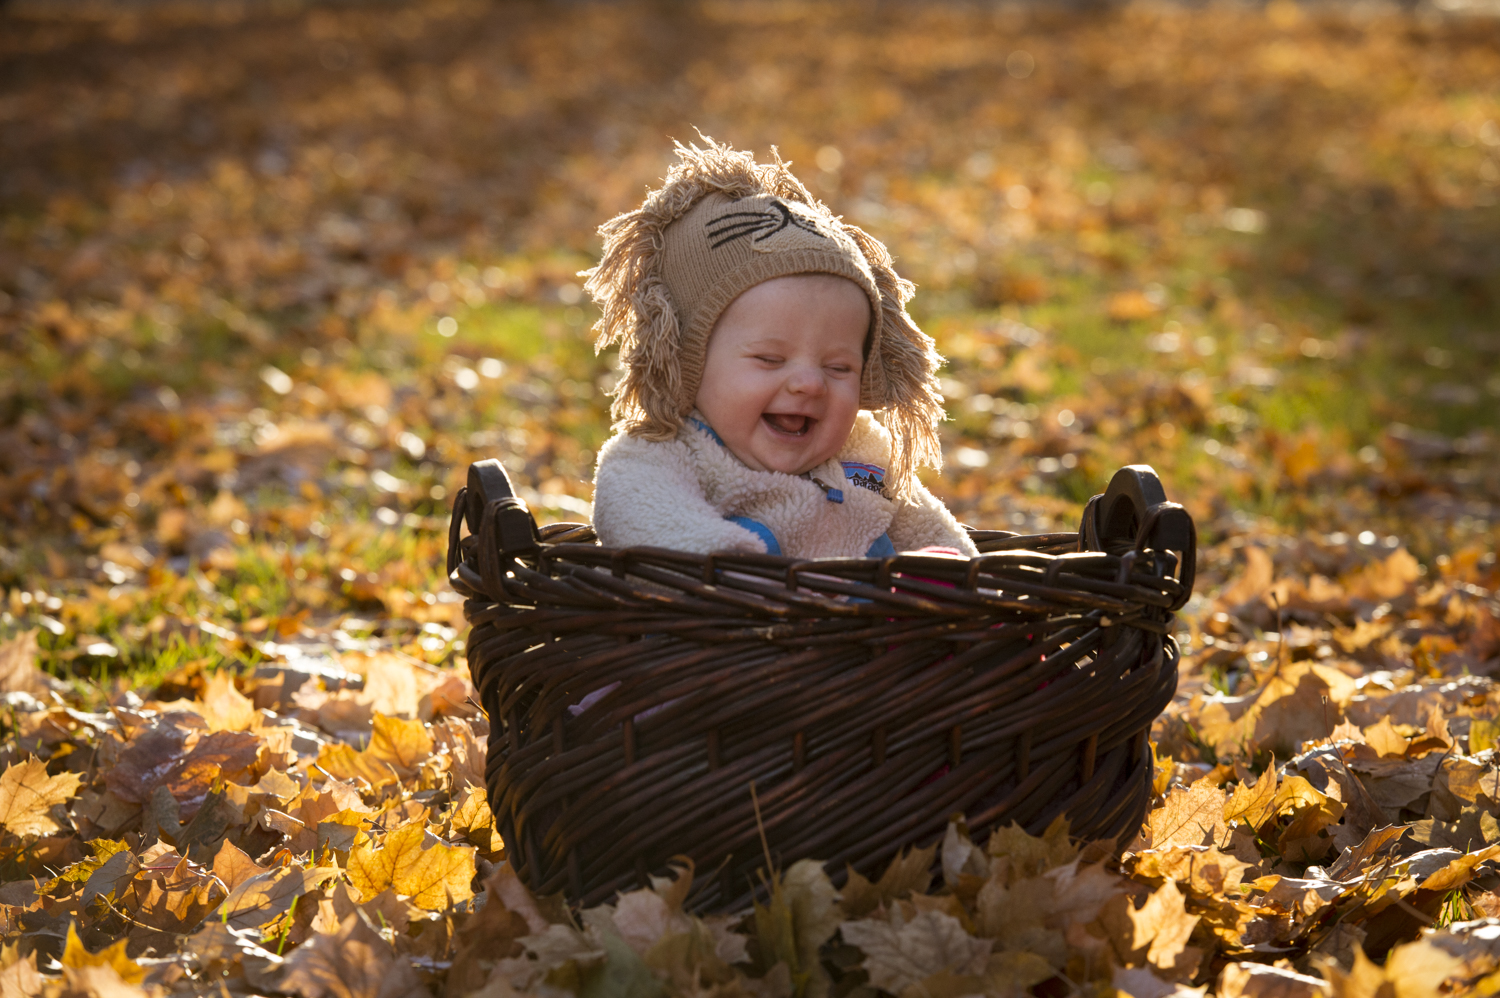 fall_lifestyle_family_leaves_candid_playing-006.jpg